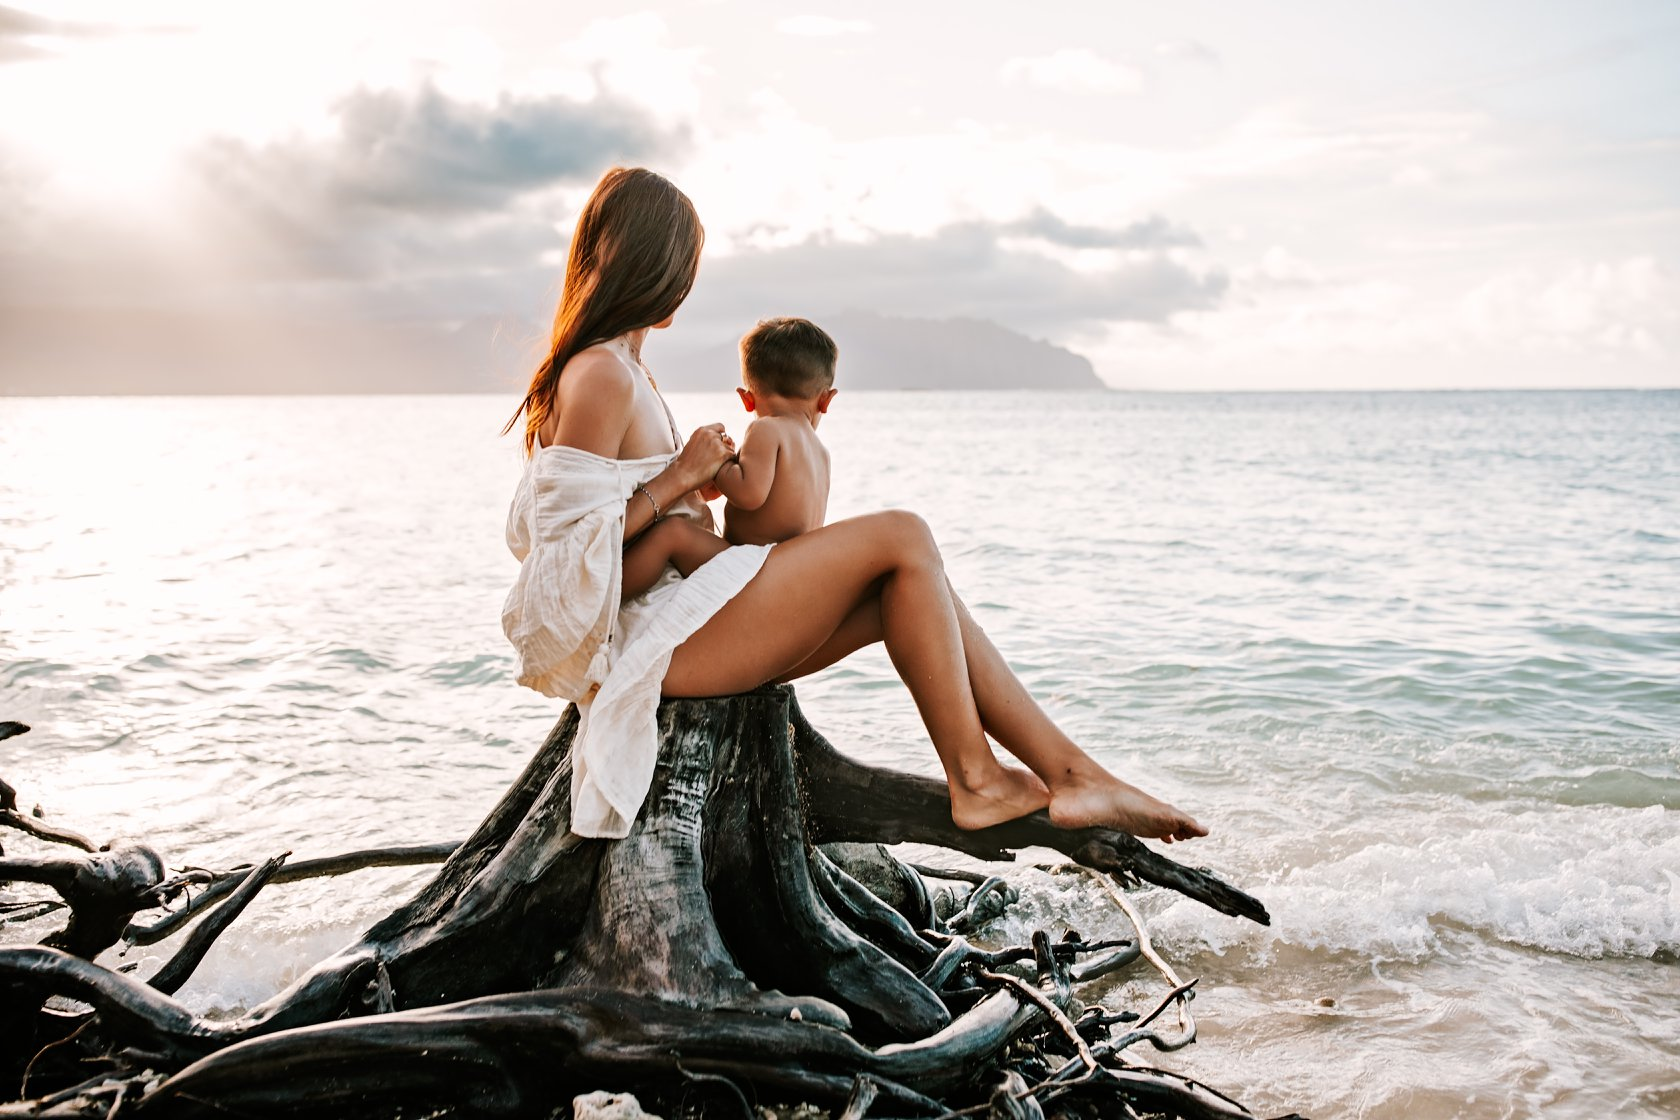 Family Photography. mother and child looking out at the ocean